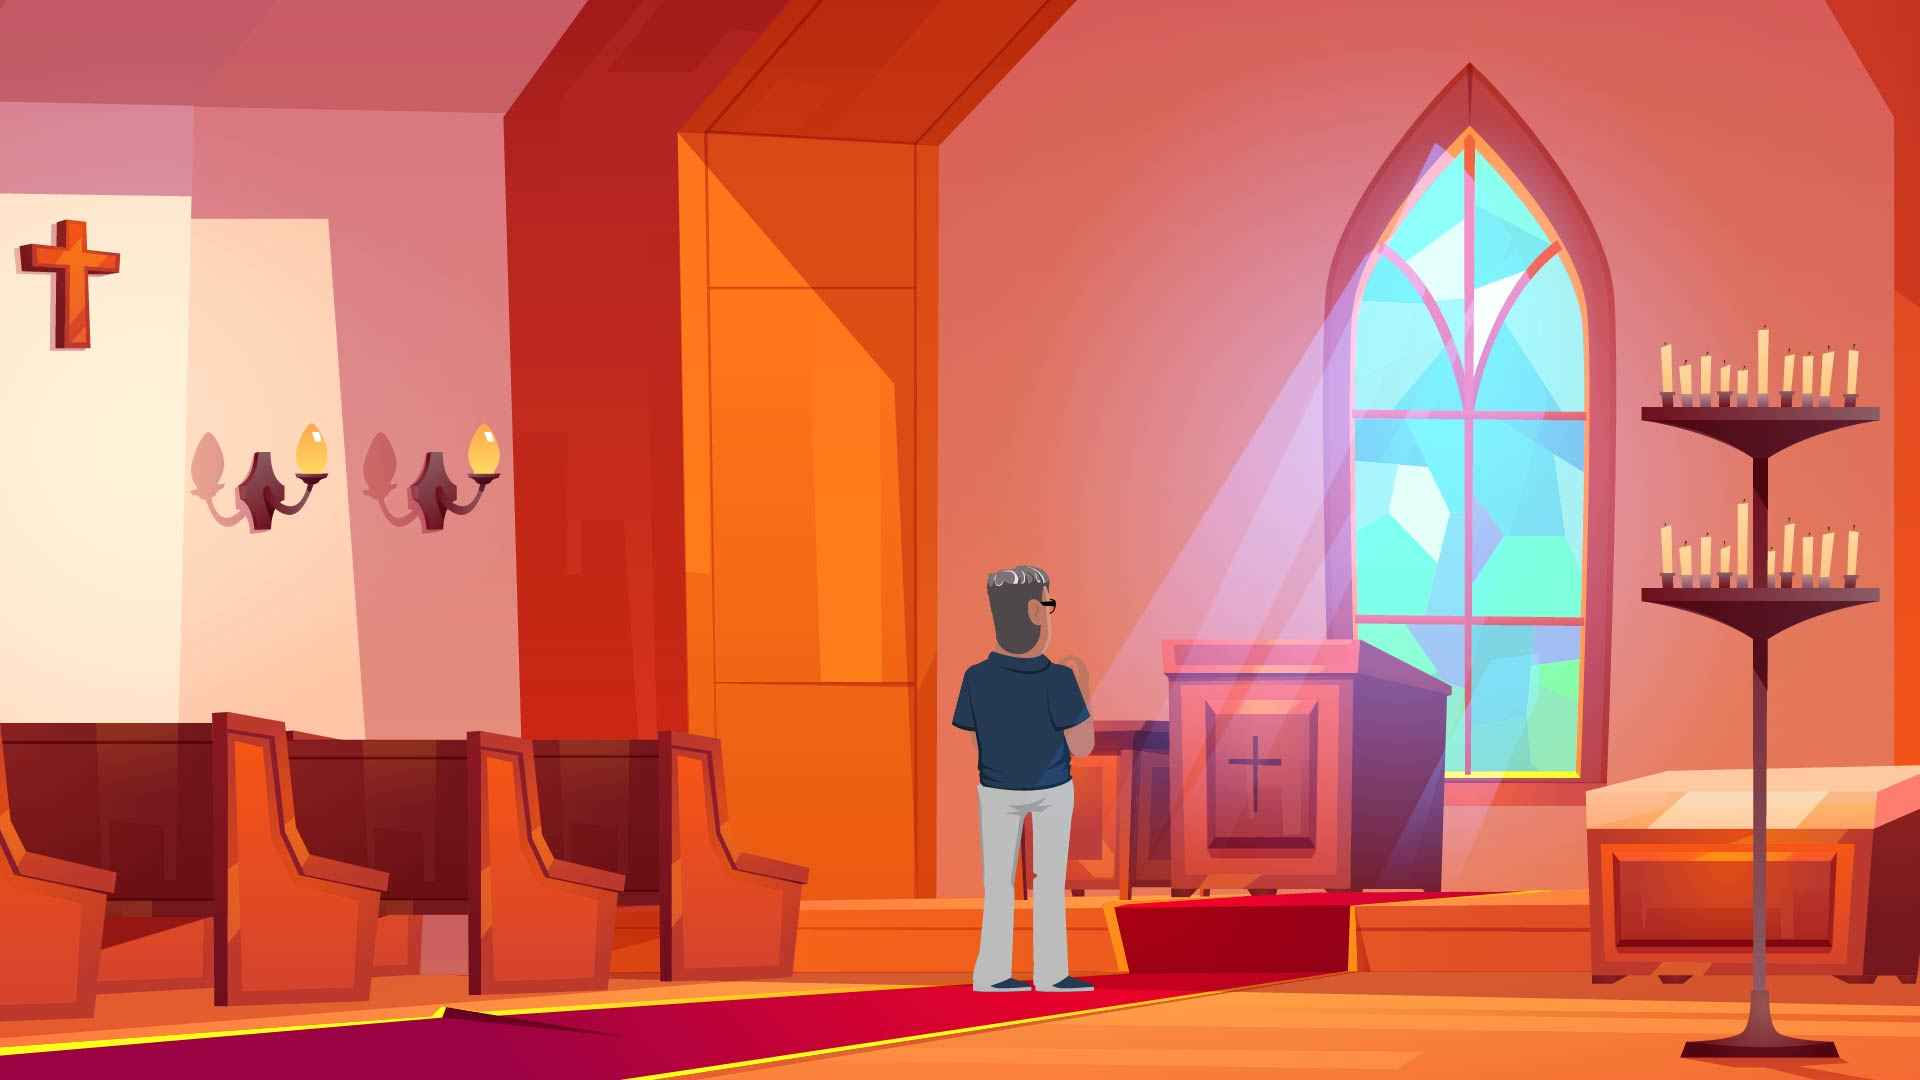 A man stands in the building - 2d graphics with character animation